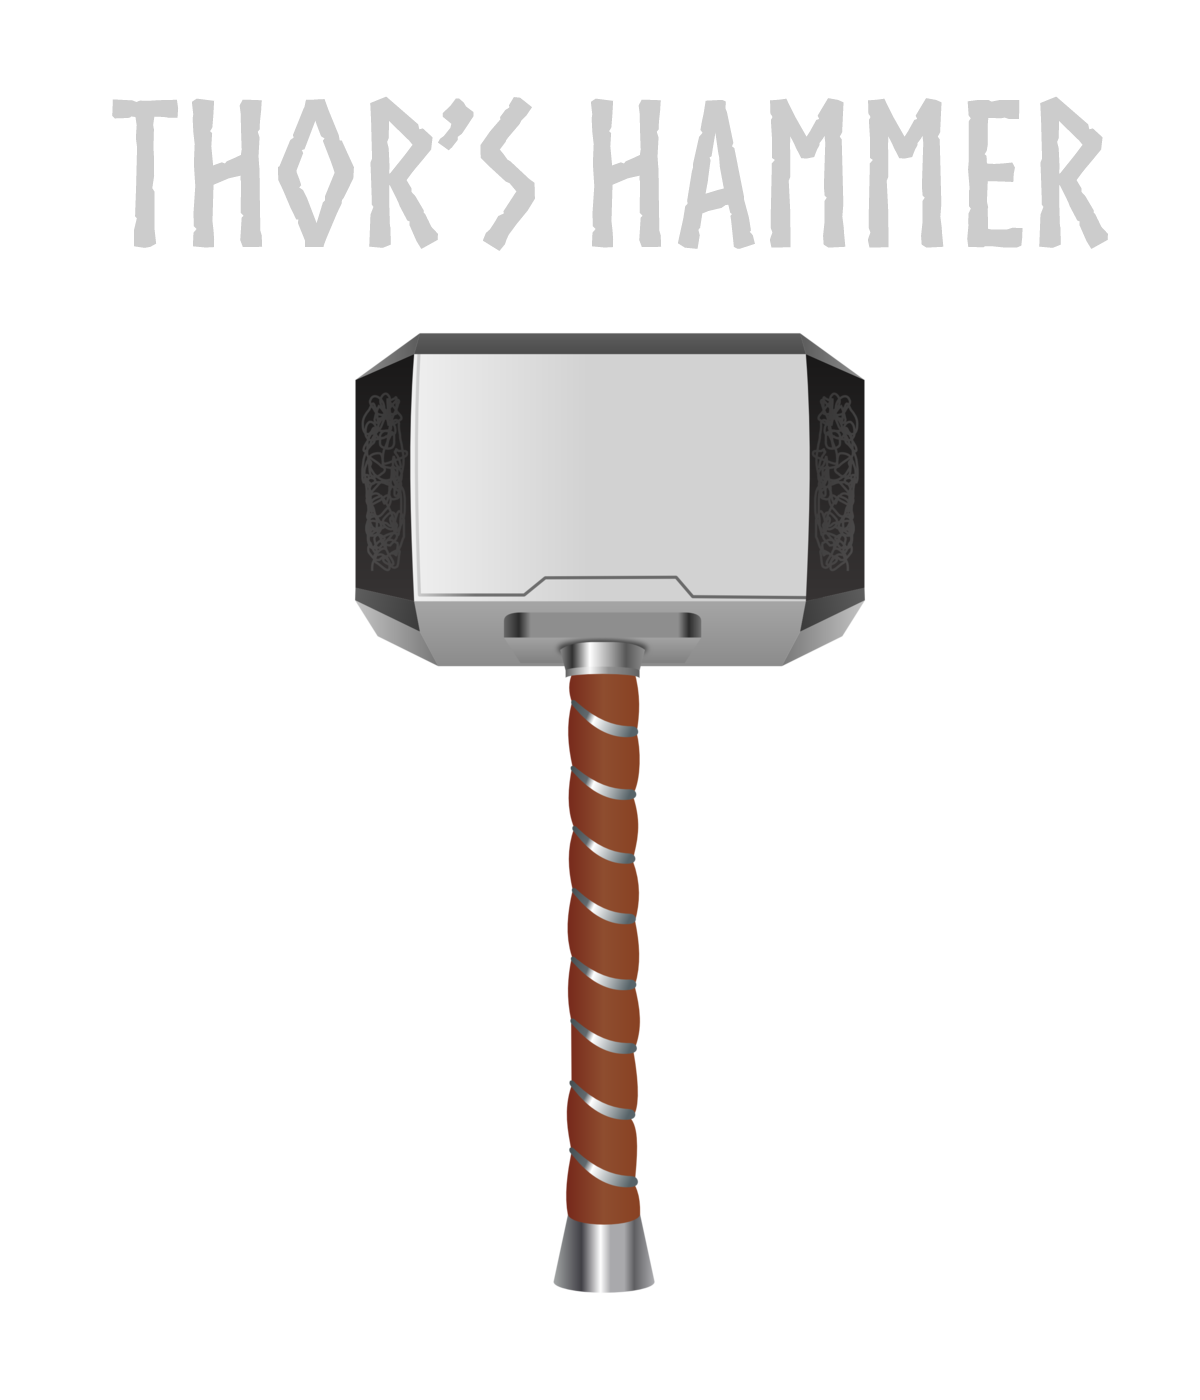 Thor hammer png. S game join the